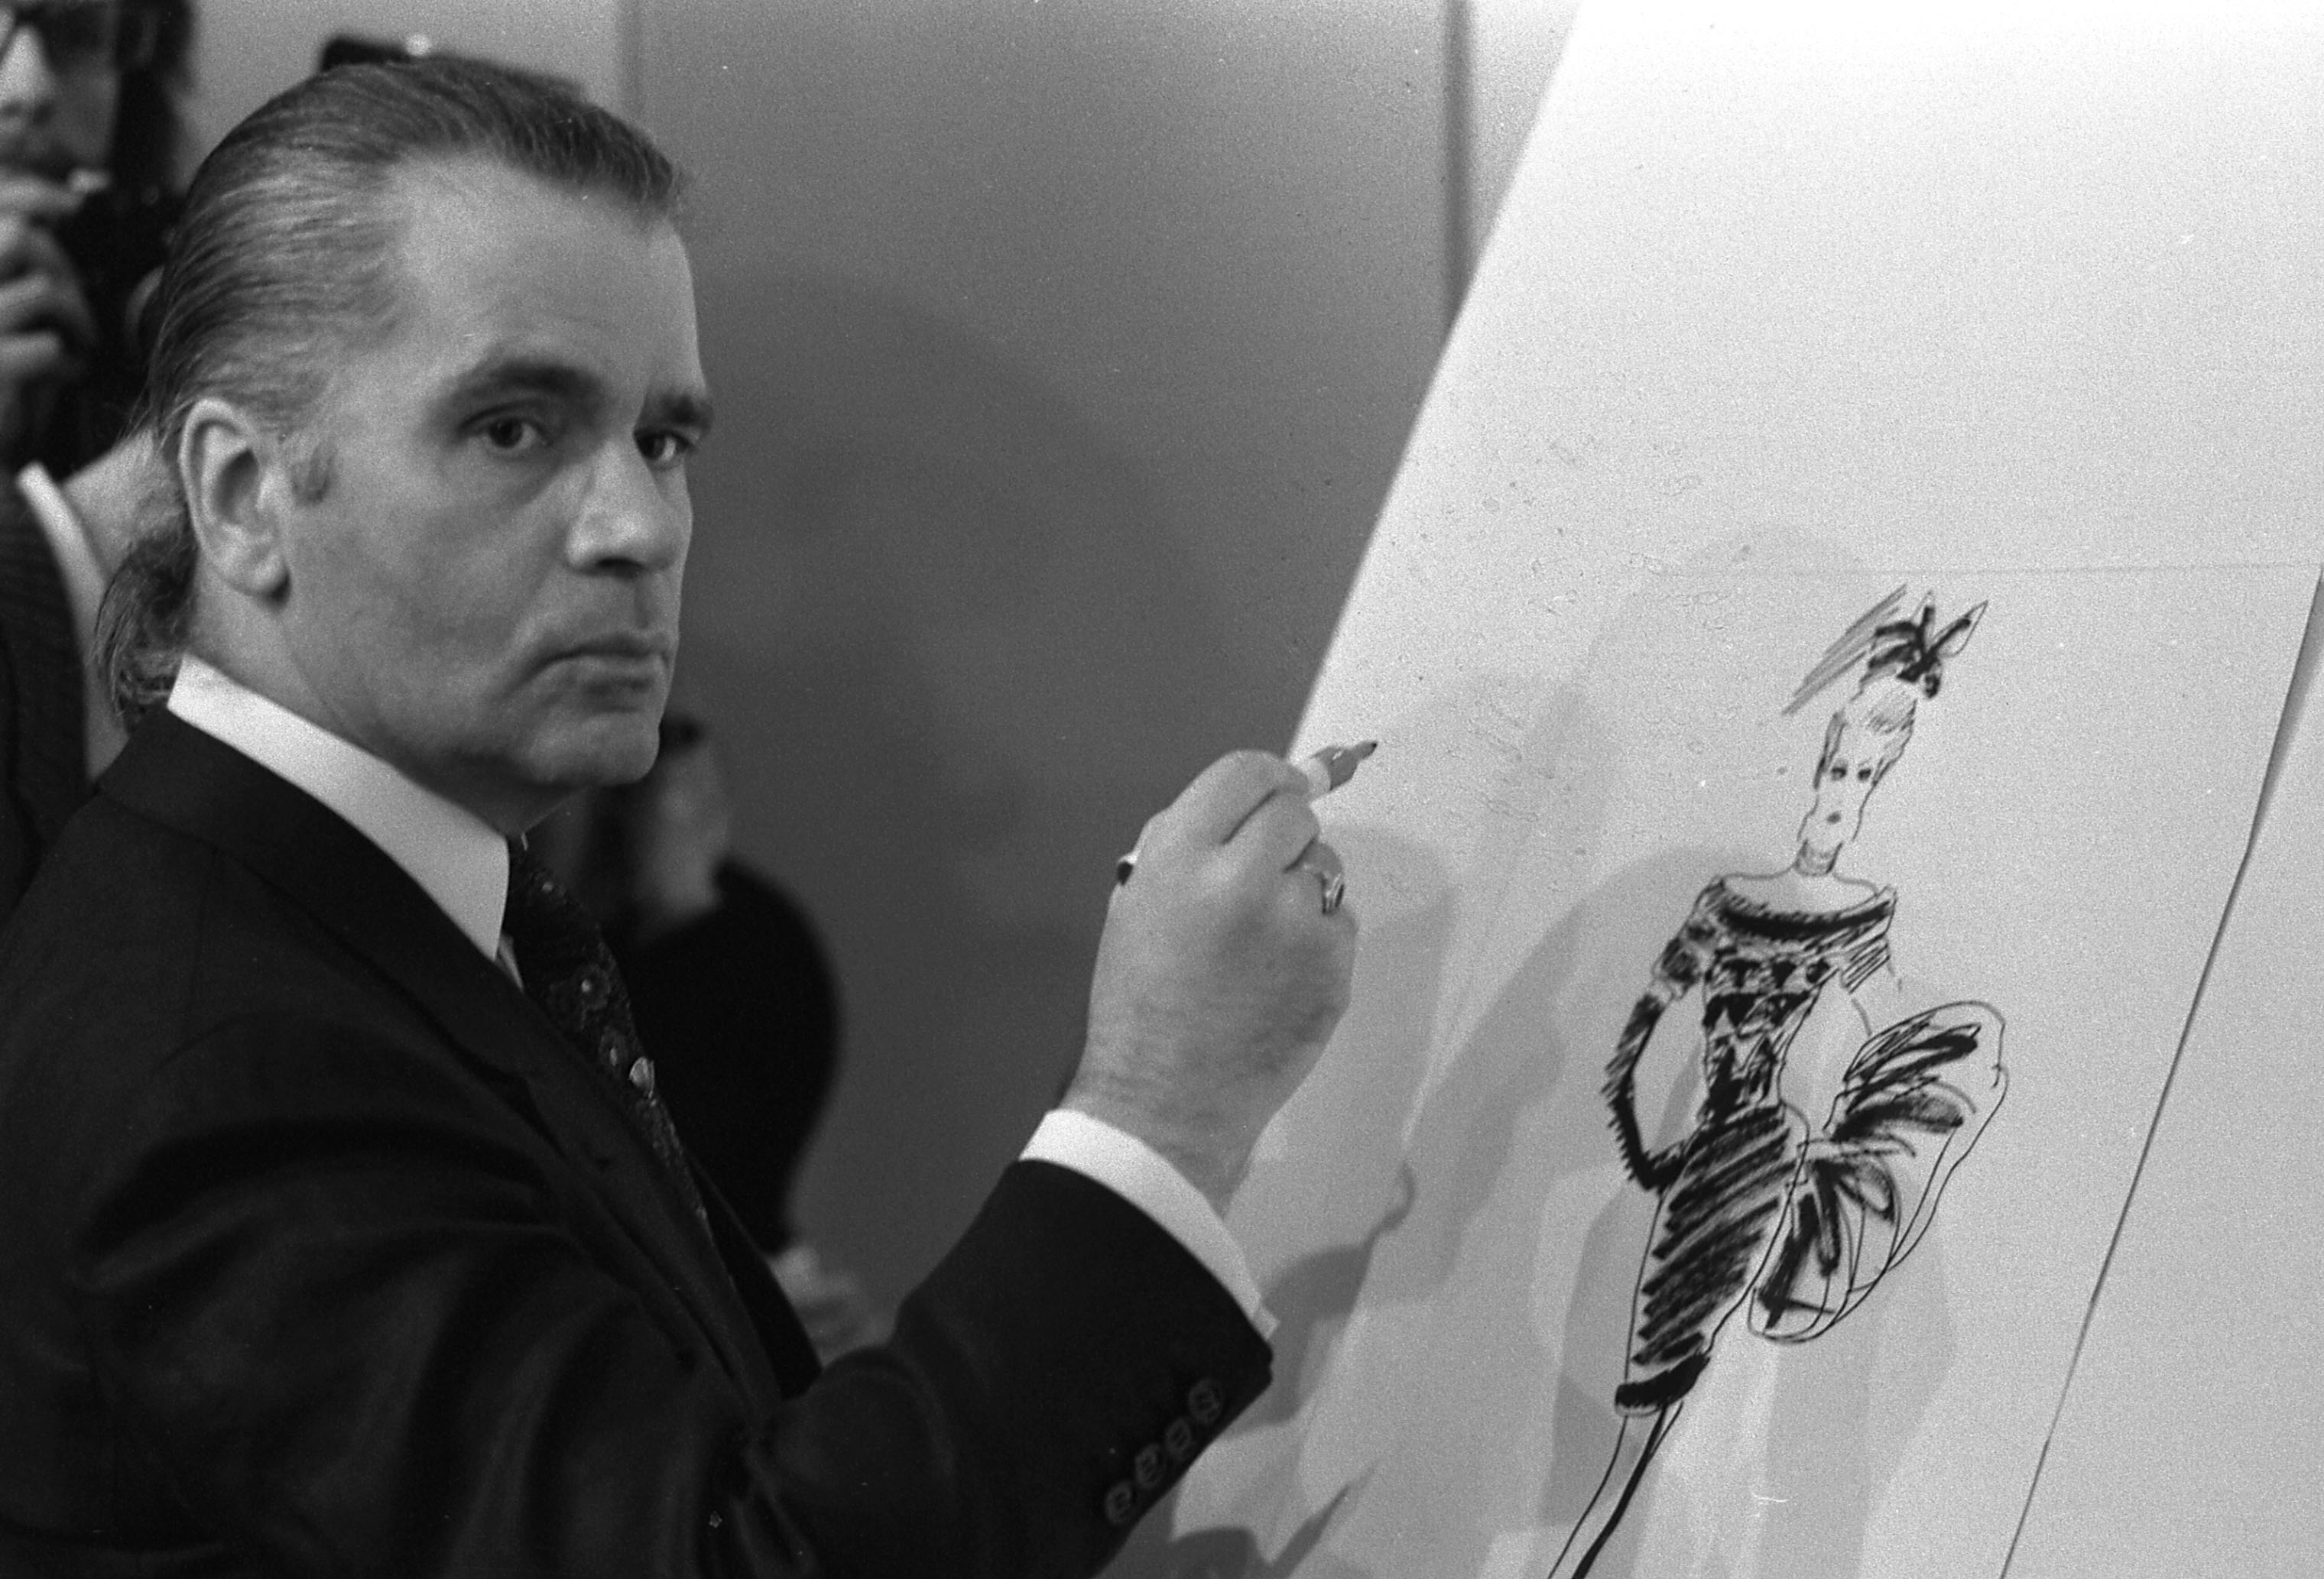 Karl Lagerfeld draws designs for textile manufacturer Klaus Steilmann, during a presentation at the Congress Center in Dusseldorf, West Germany on Sept. 4, 1987.